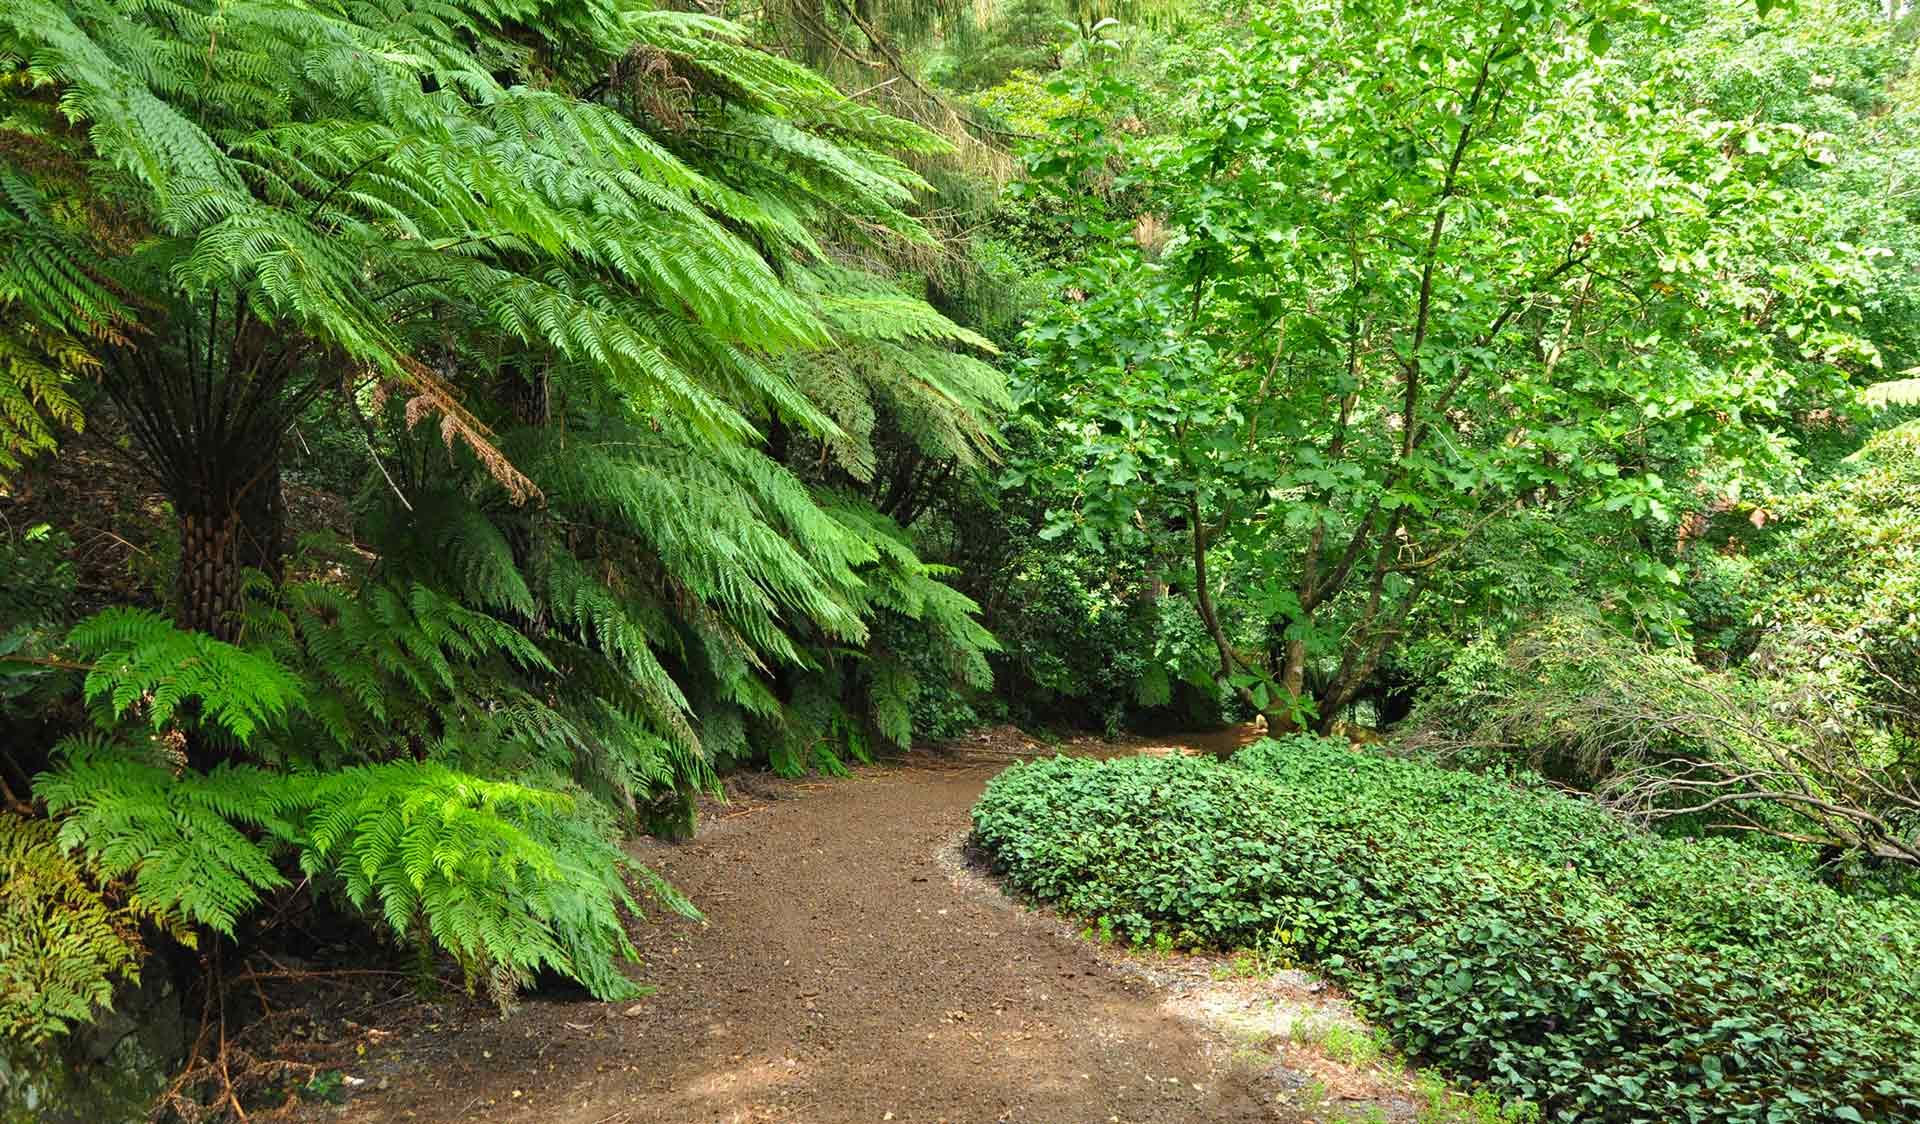 A path in Pirianda Garden in the Dandenong Ranges National Park.